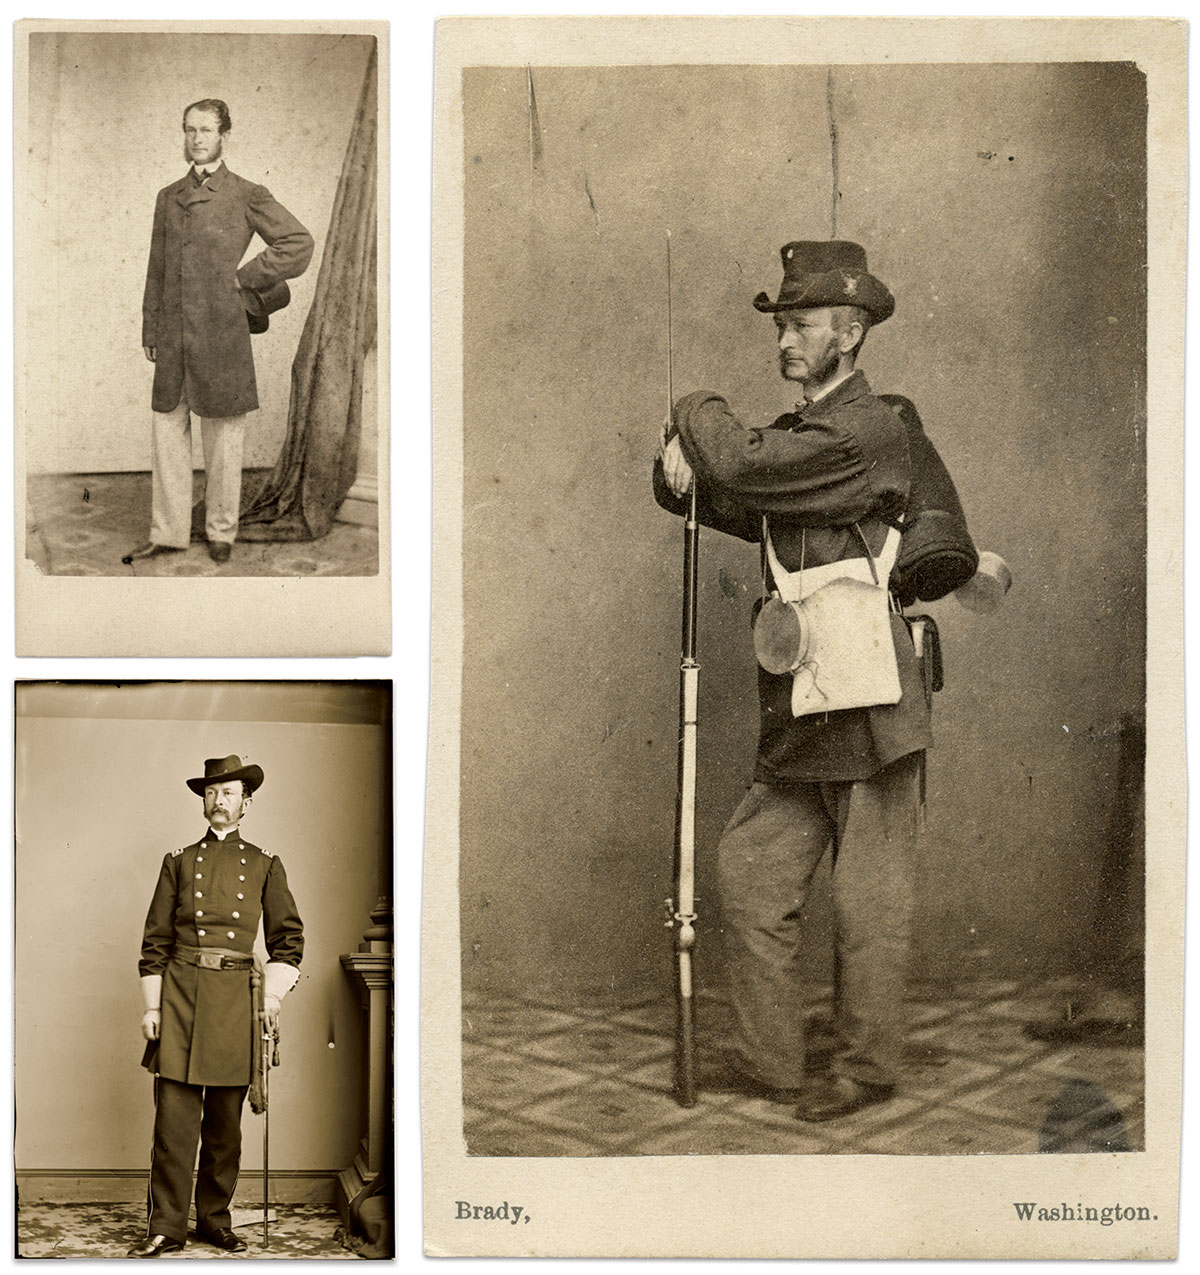 Top, left: In civilian clothes, about 1861. Carte de visite by Frank Rowell of Providence, R.I. Rick Carlile Collection. Bottom, left: As a colonel, about 1865. Library of Congress. Right: Carte de visite by Mathew B. Brady of Washington, D.C. Rick Carlile Collection.